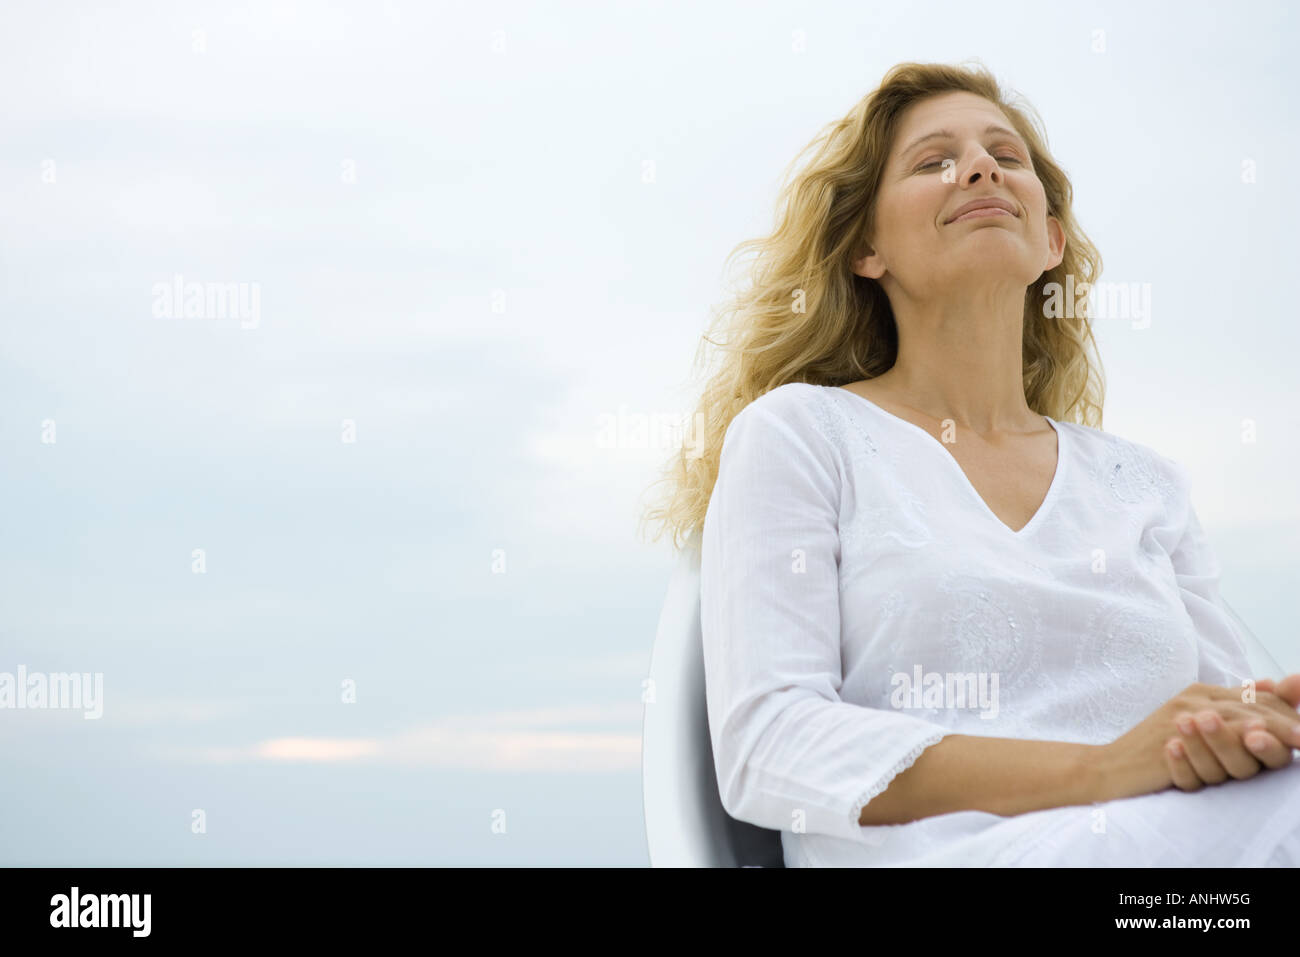 Woman sitting with eyes closed, smiling, sky in background, low angle view - Stock Image